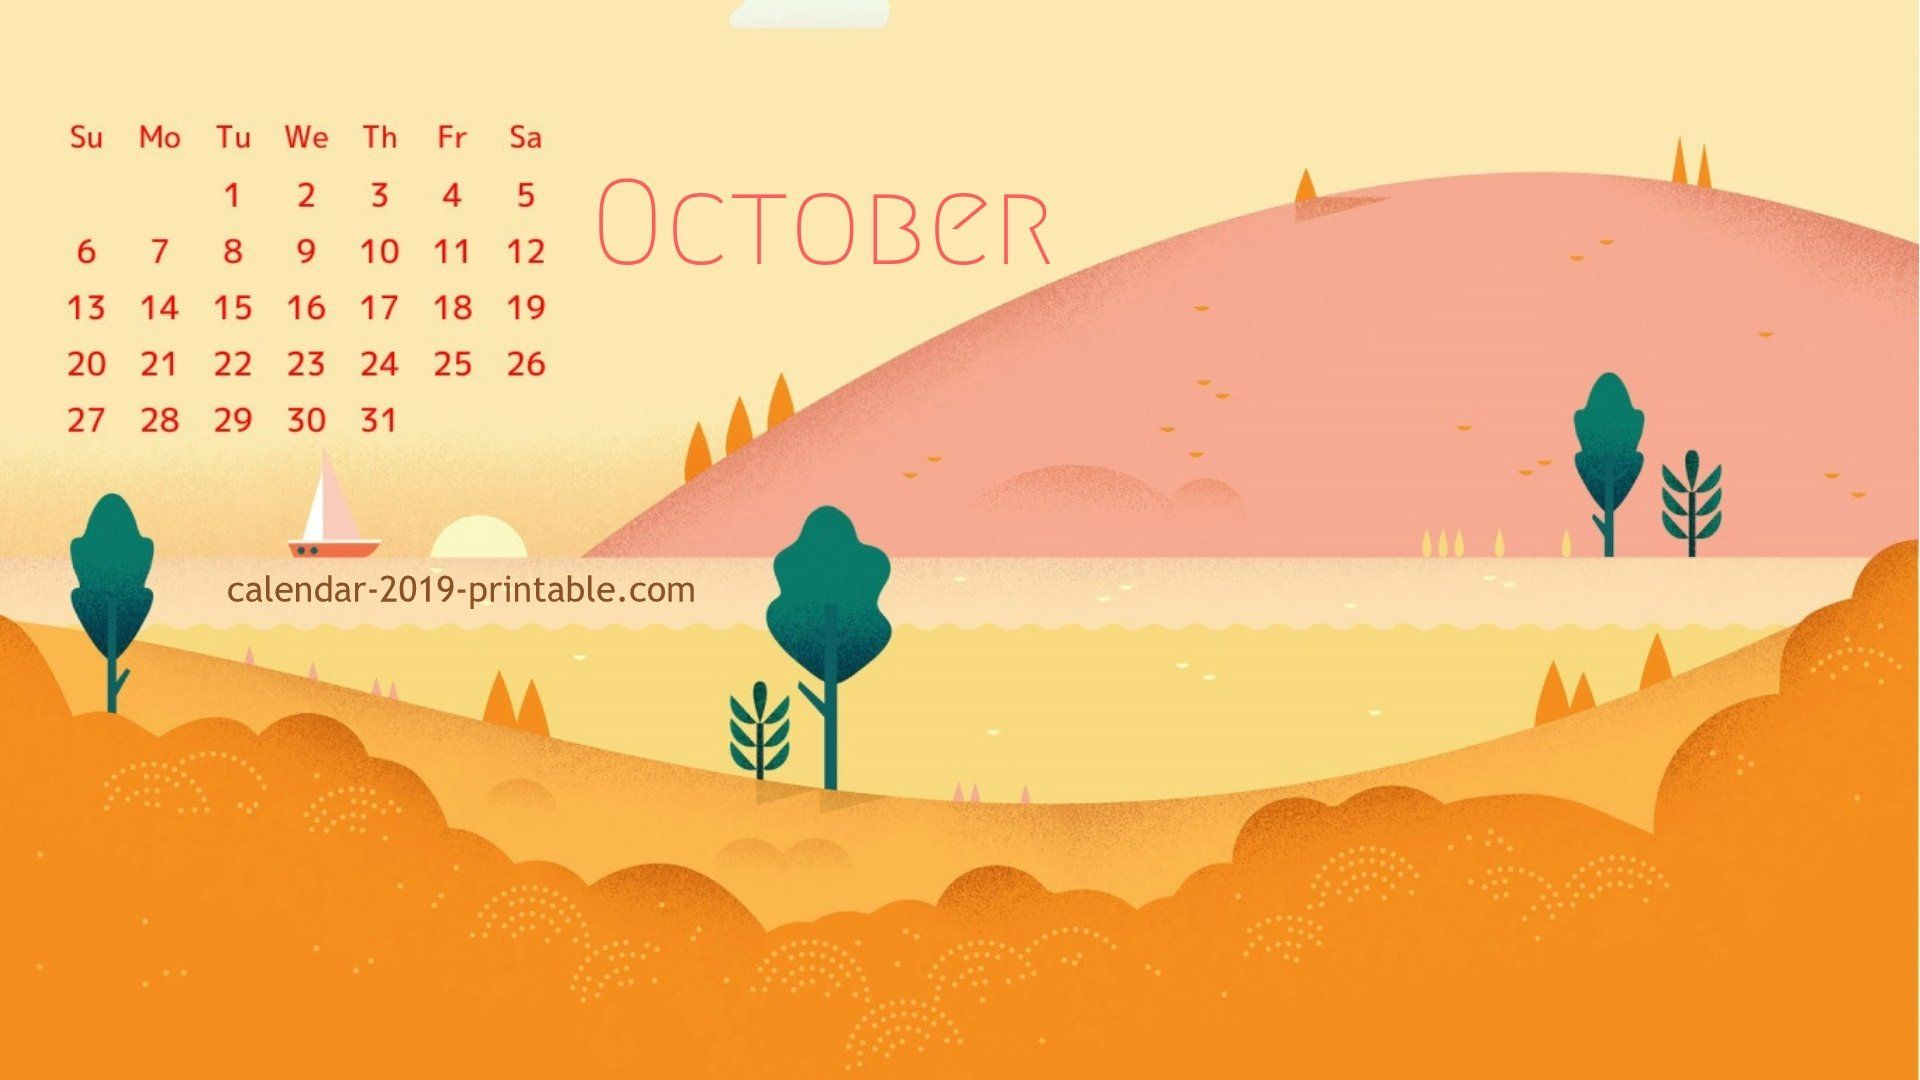 40 October 2019 Calendar Wallpapers On Wallpapersafari